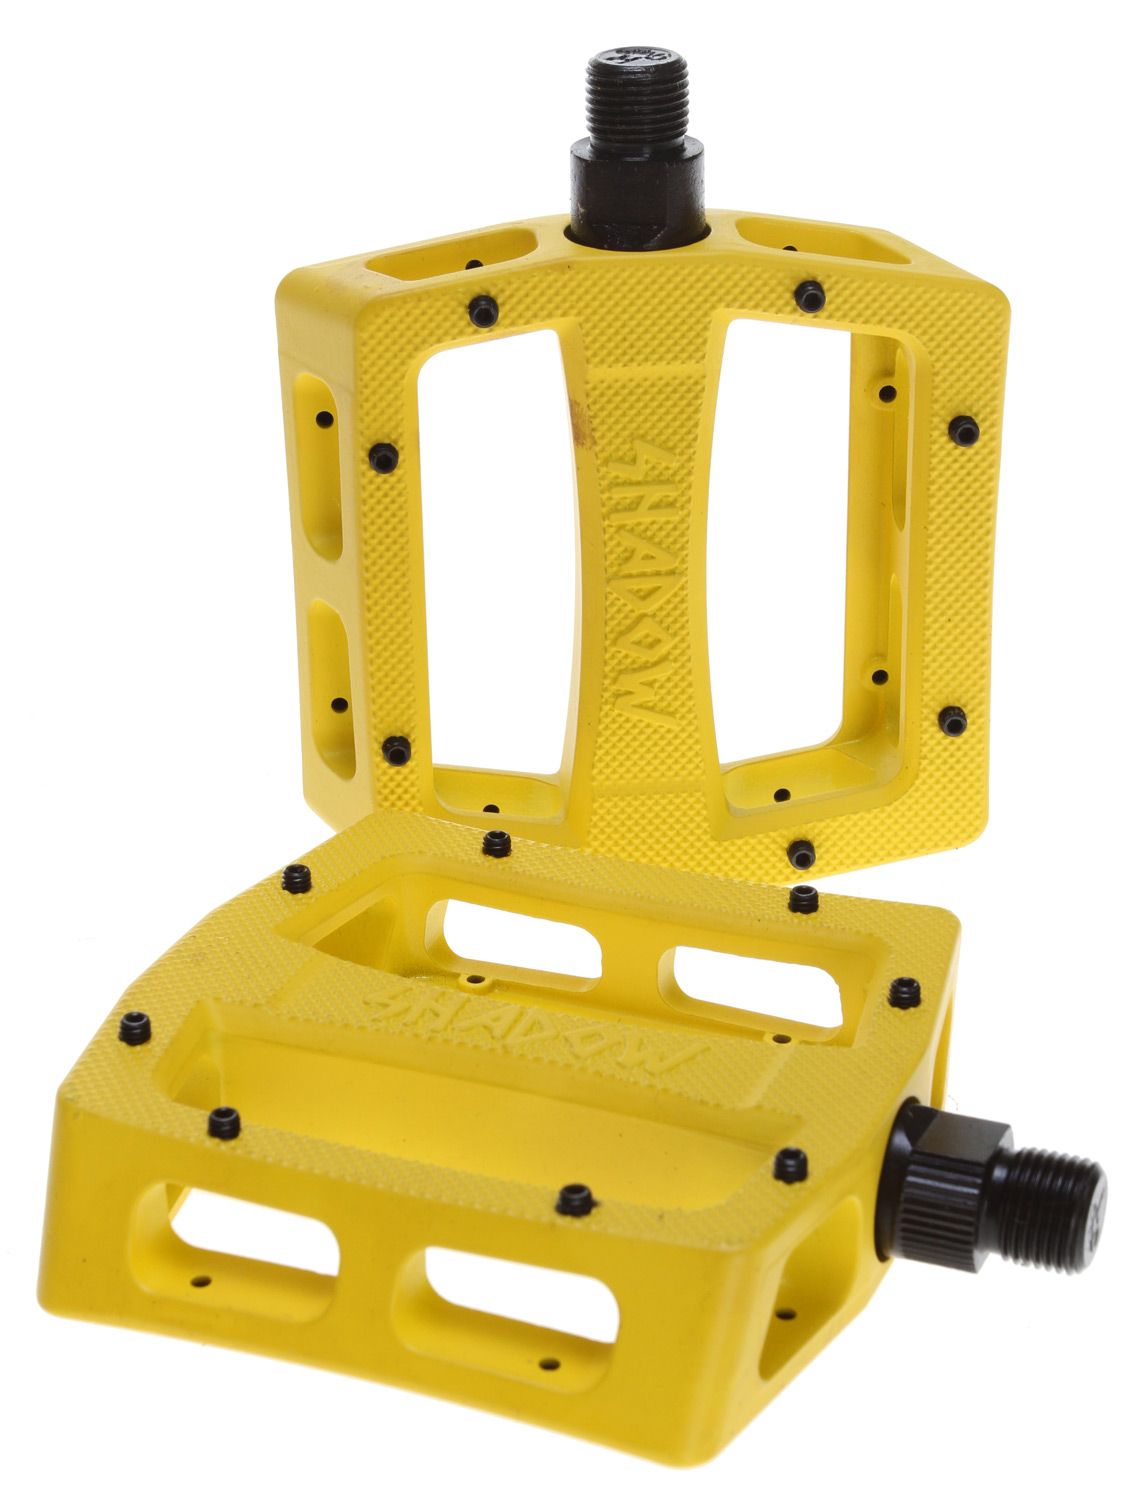 "BMX Key Features of the The Shadow Conspiracy Ravager Alloy Loose Ball Bike Pedals Yellow 9/16"": Pedal Type: Platform Intended Use: BMX Pedal Spindle: 9/16"" Spindle Material: Chromoly Material: Alloy Wght/Dims: 1.4 lbs. 5.5 x 5 x 3 - $35.95"